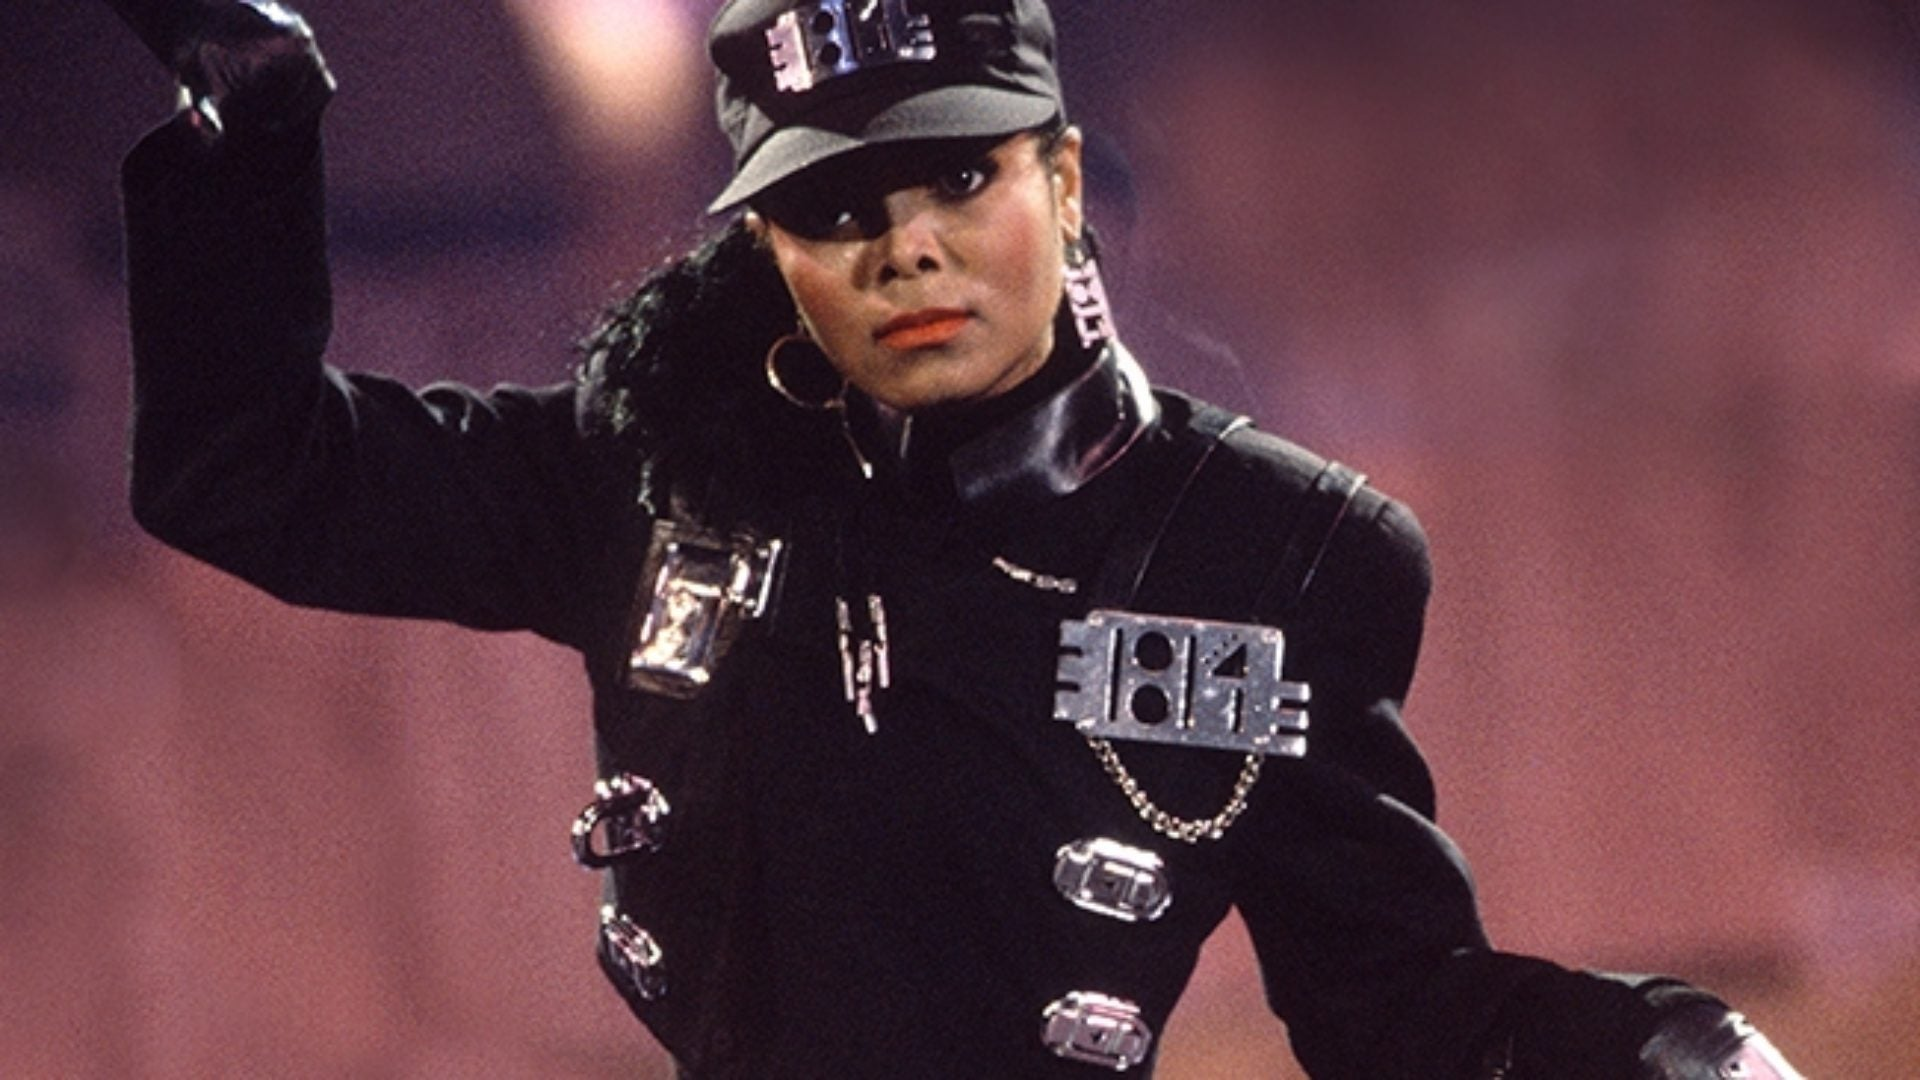 Janet Jackson Dance Routines Every Black Girl Knows - Essence